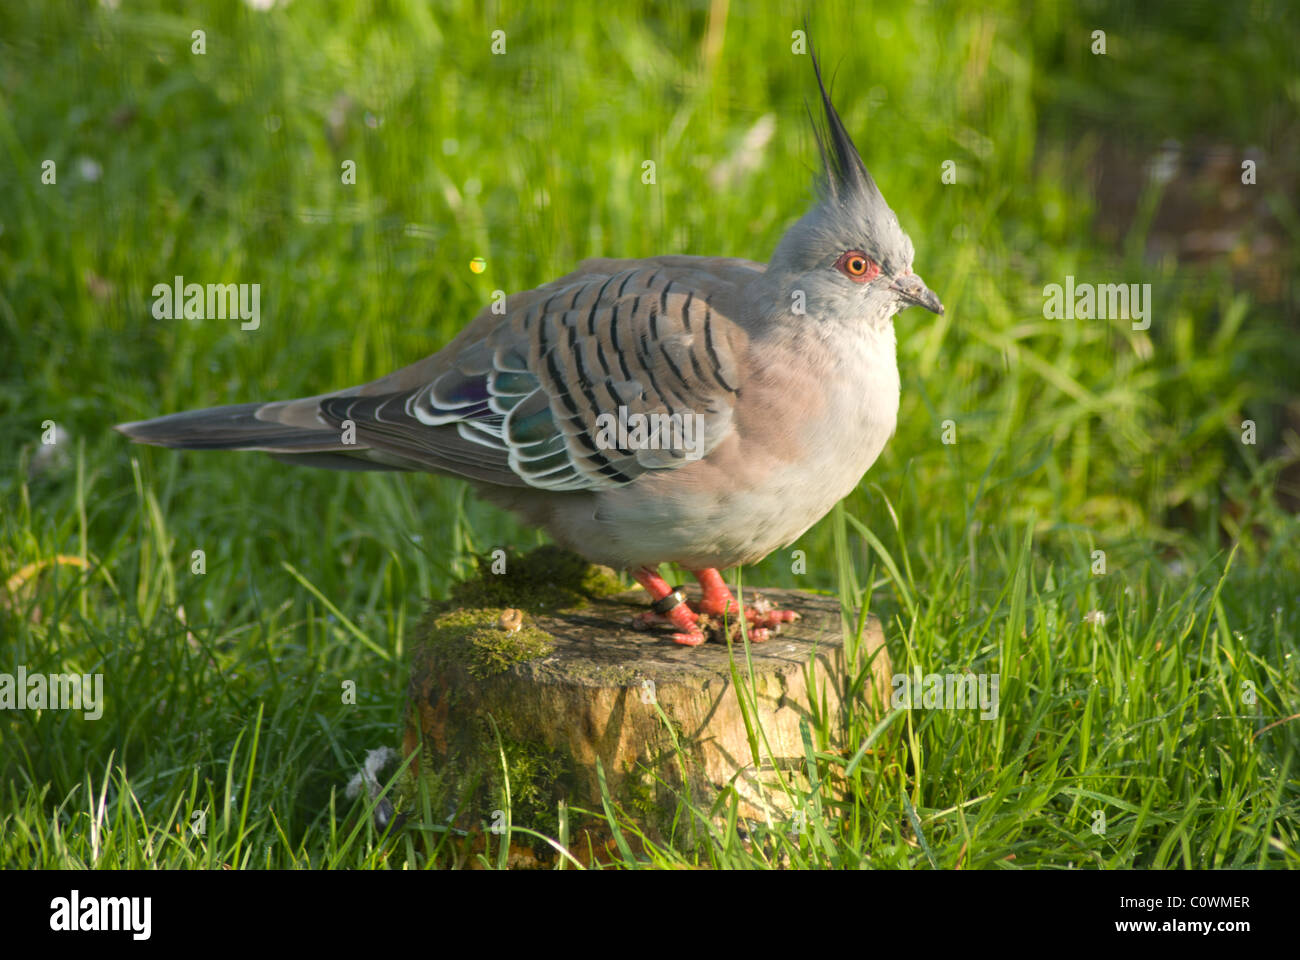 An Australian wood pigeon standing on a tree stump in profile - Stock Image